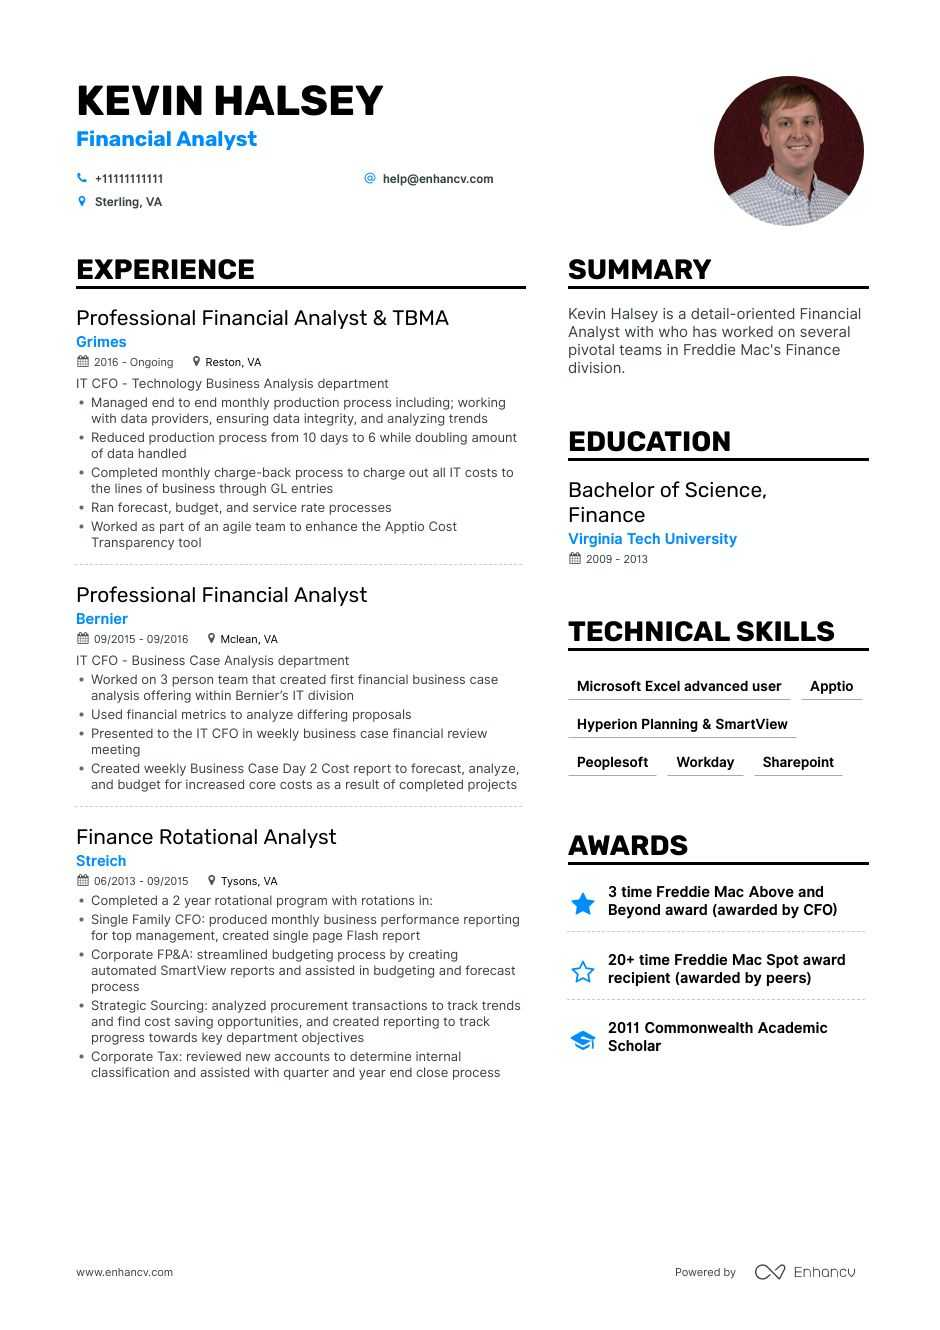 financial analyst resume example for enhancv examples creator with photo effective Resume Financial Analyst Resume Examples